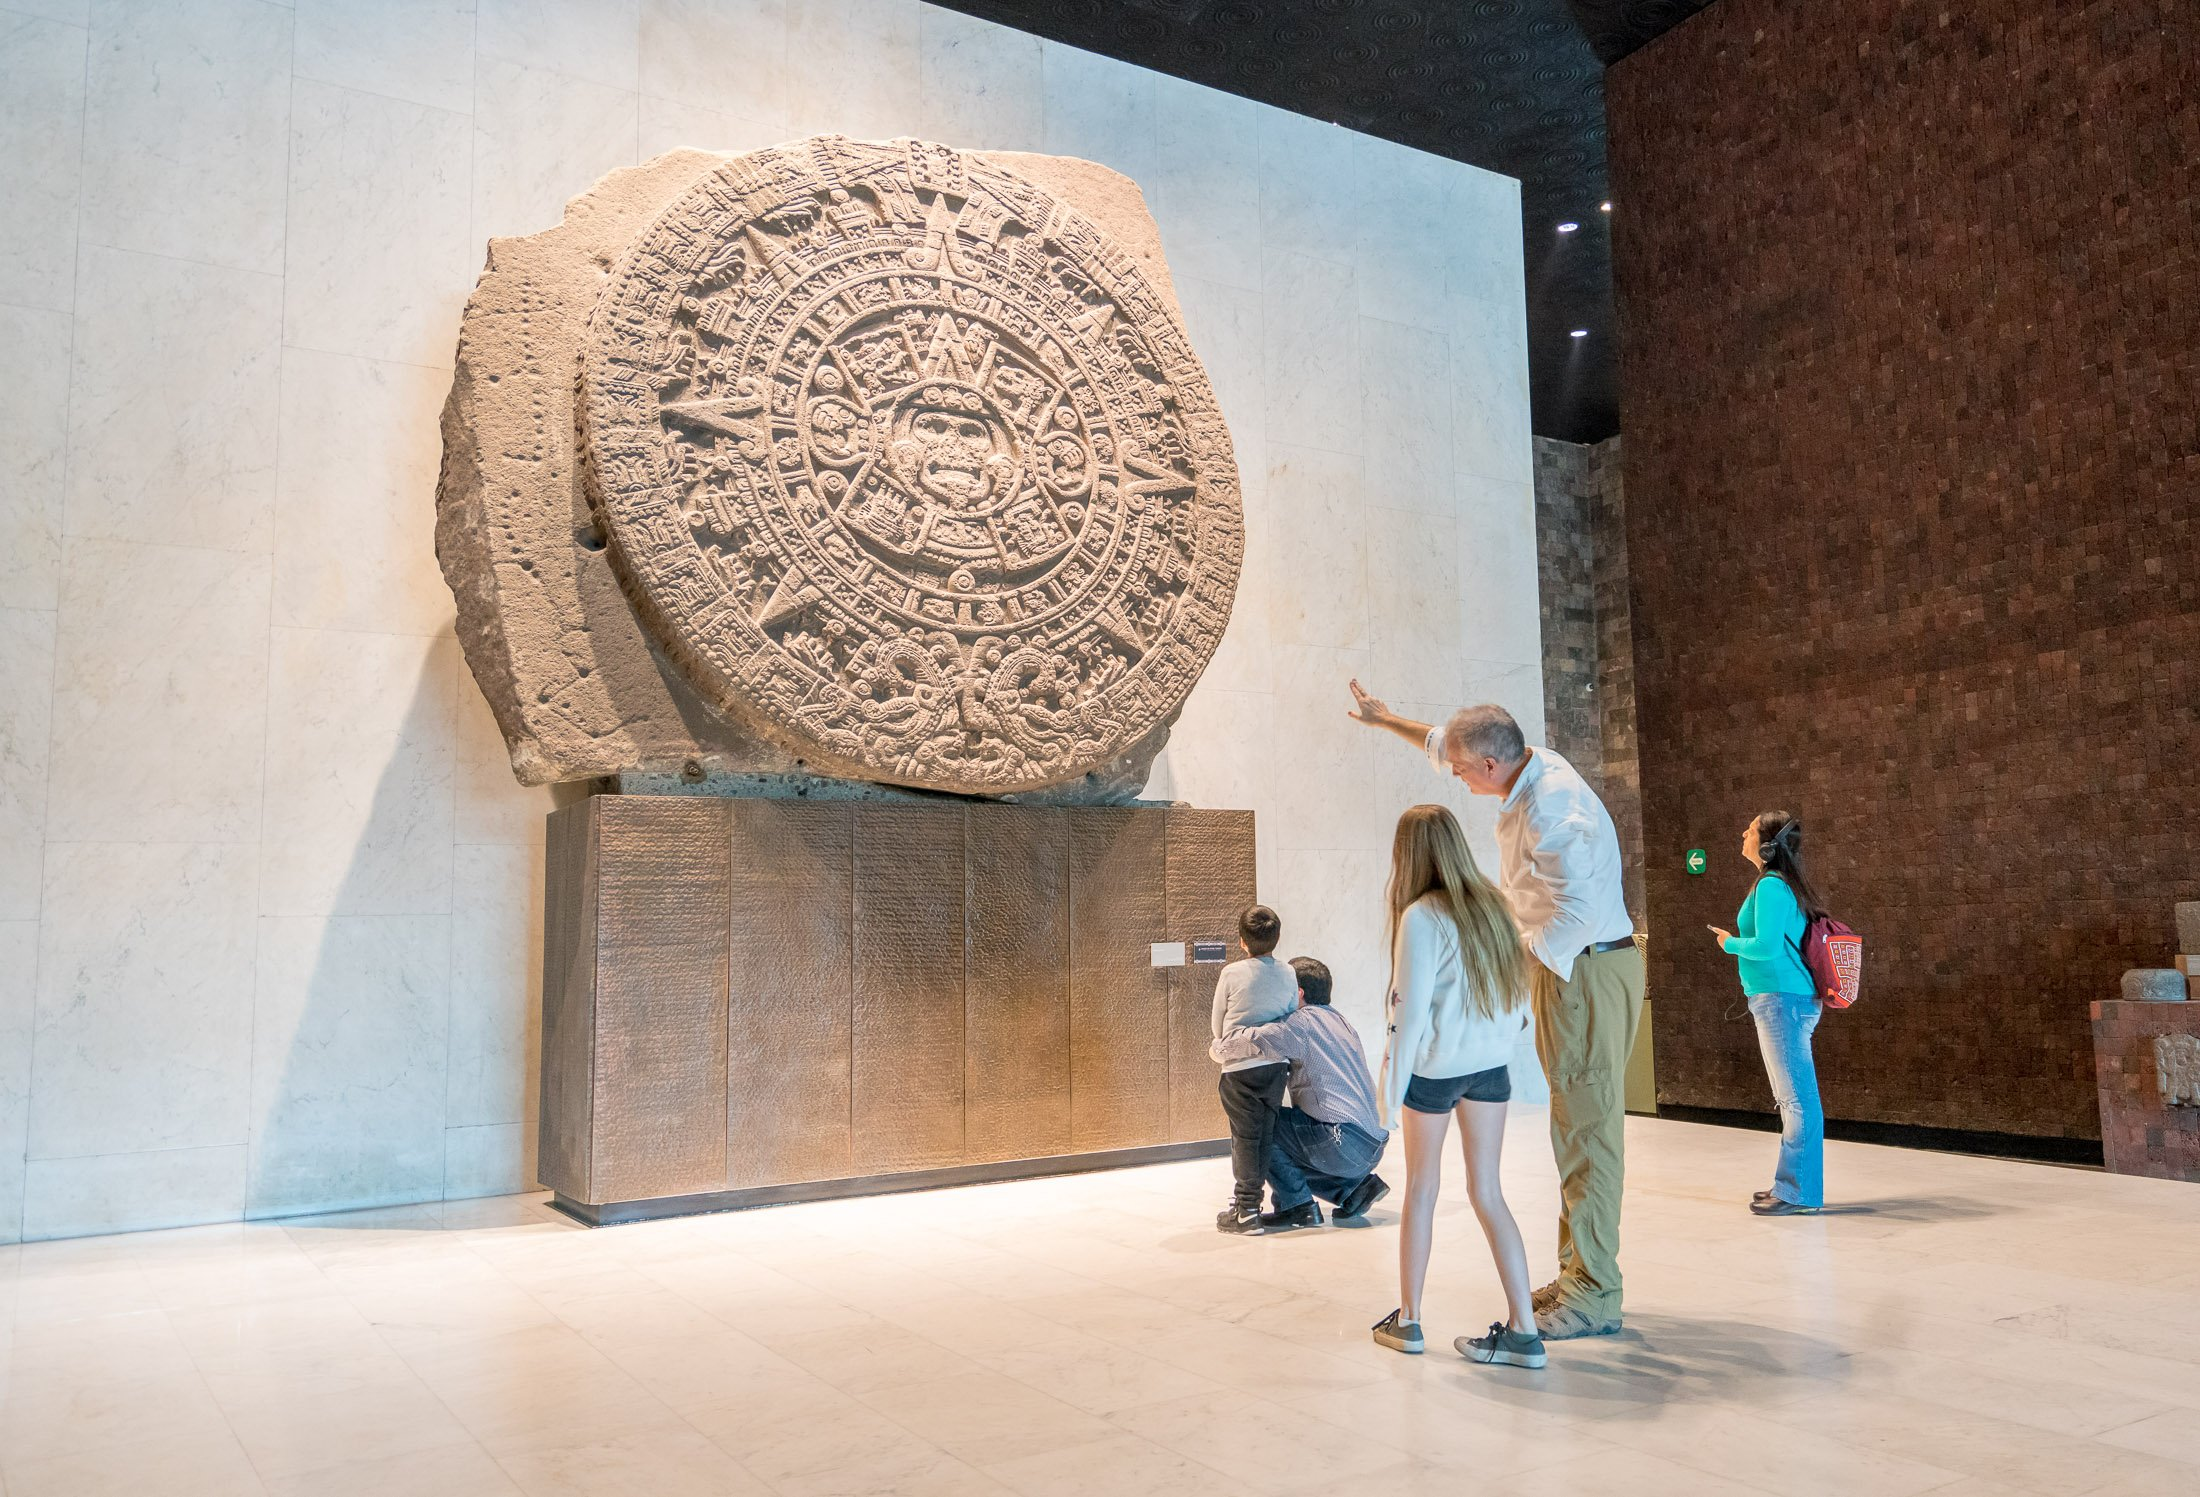 Piedra del Sol at National Museum of Anthropology, Mexico City